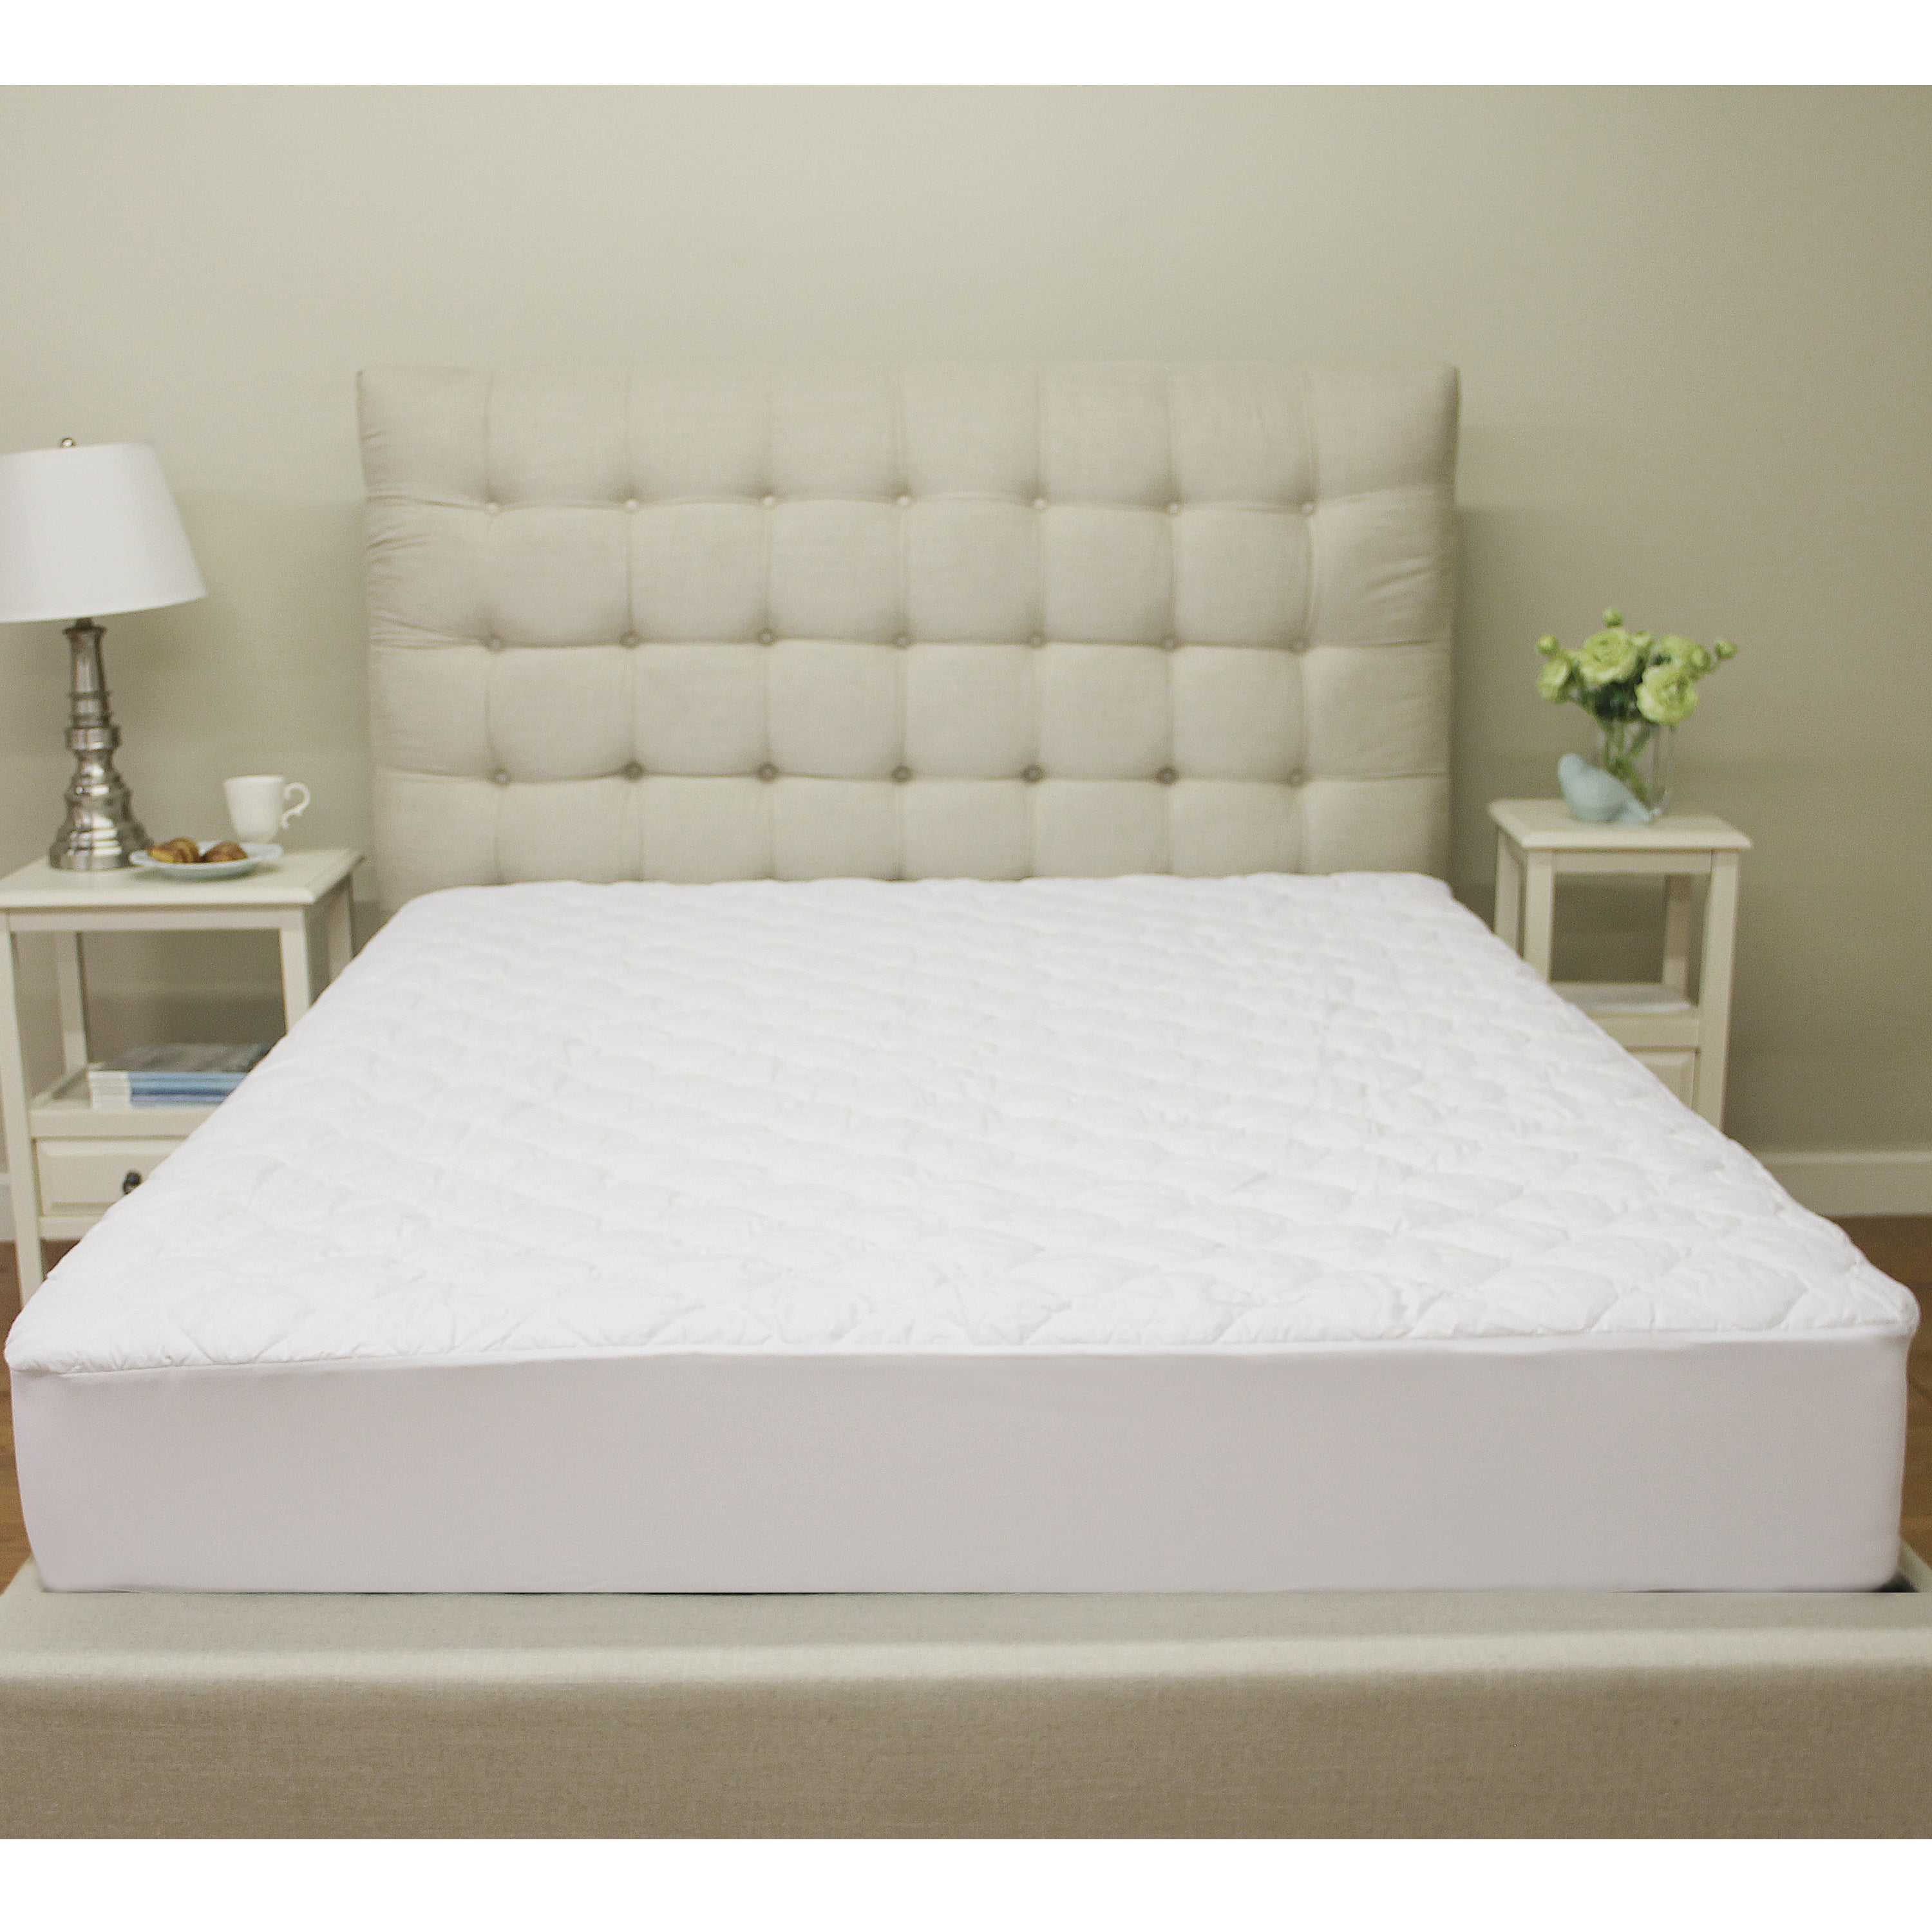 Overstock.com Renew and Revive Aspen Quilted Waterproof Mattress Protector